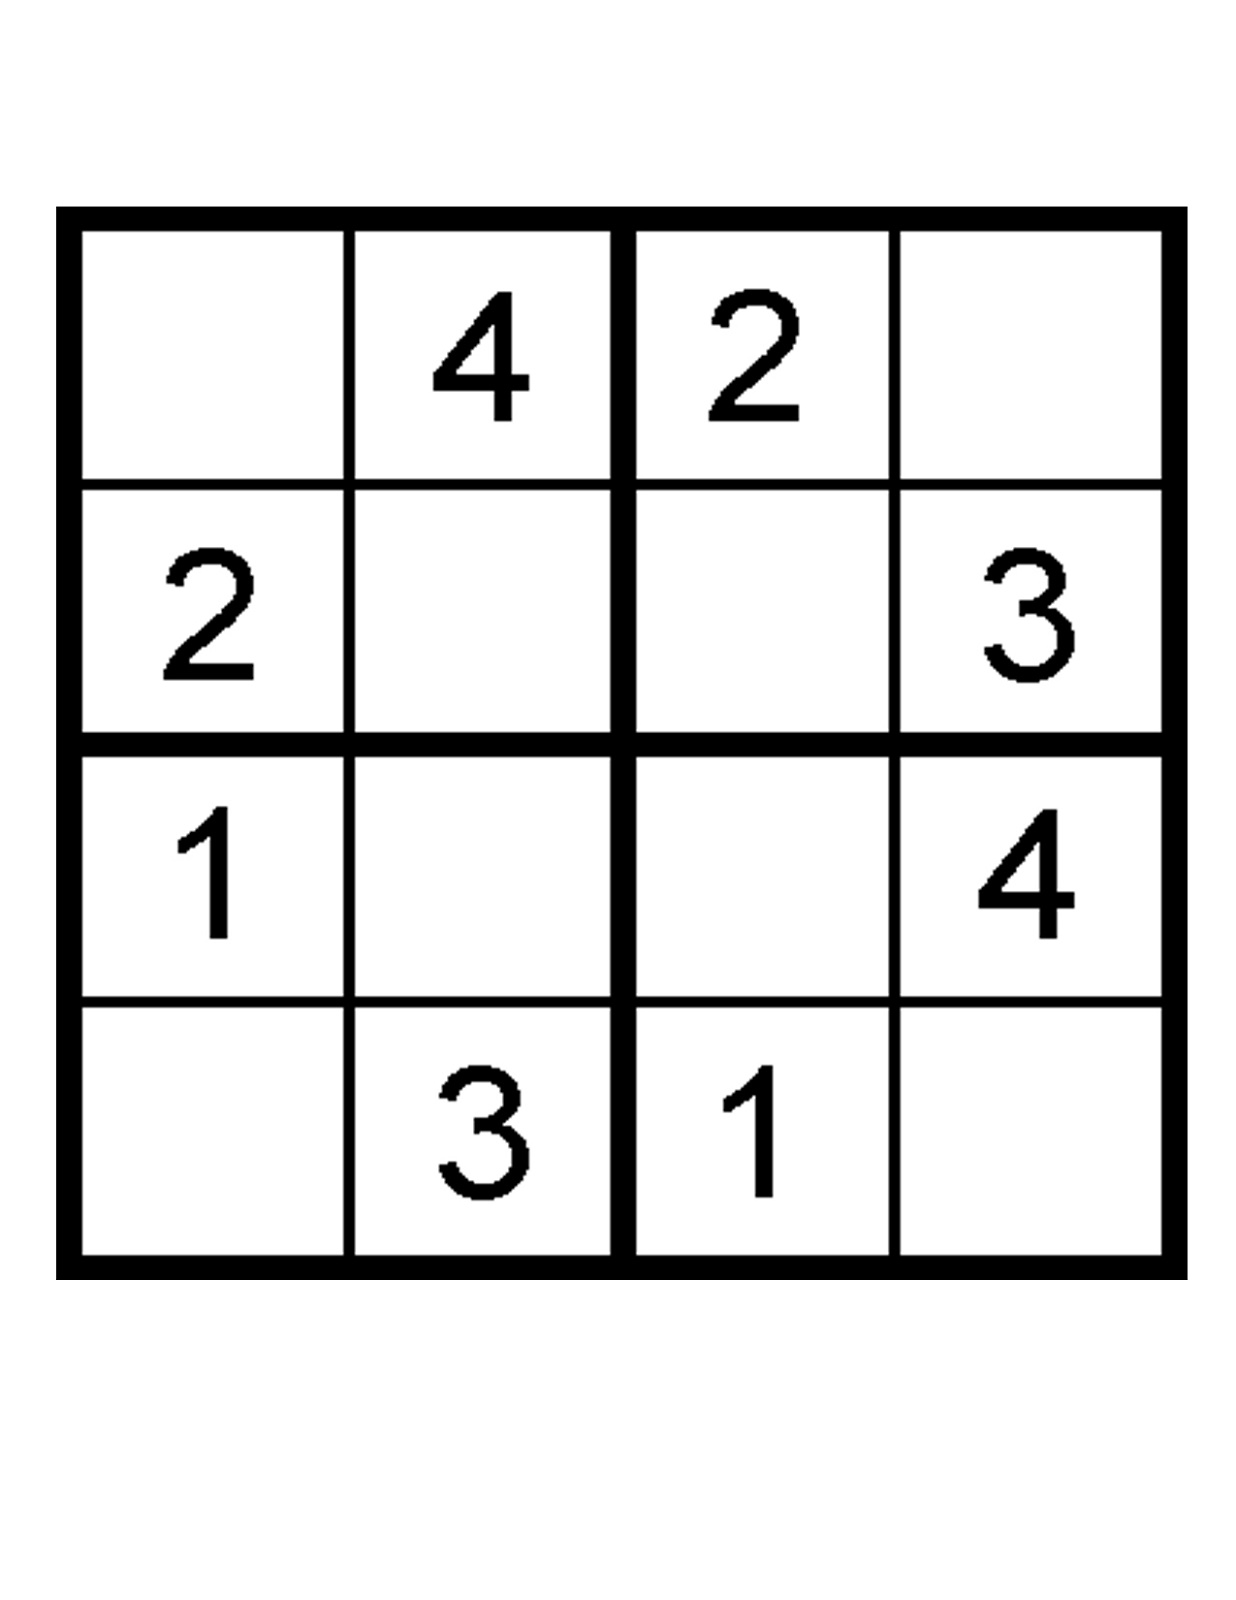 Sudoku Printable Worksheet | Printable Worksheets and Activities for